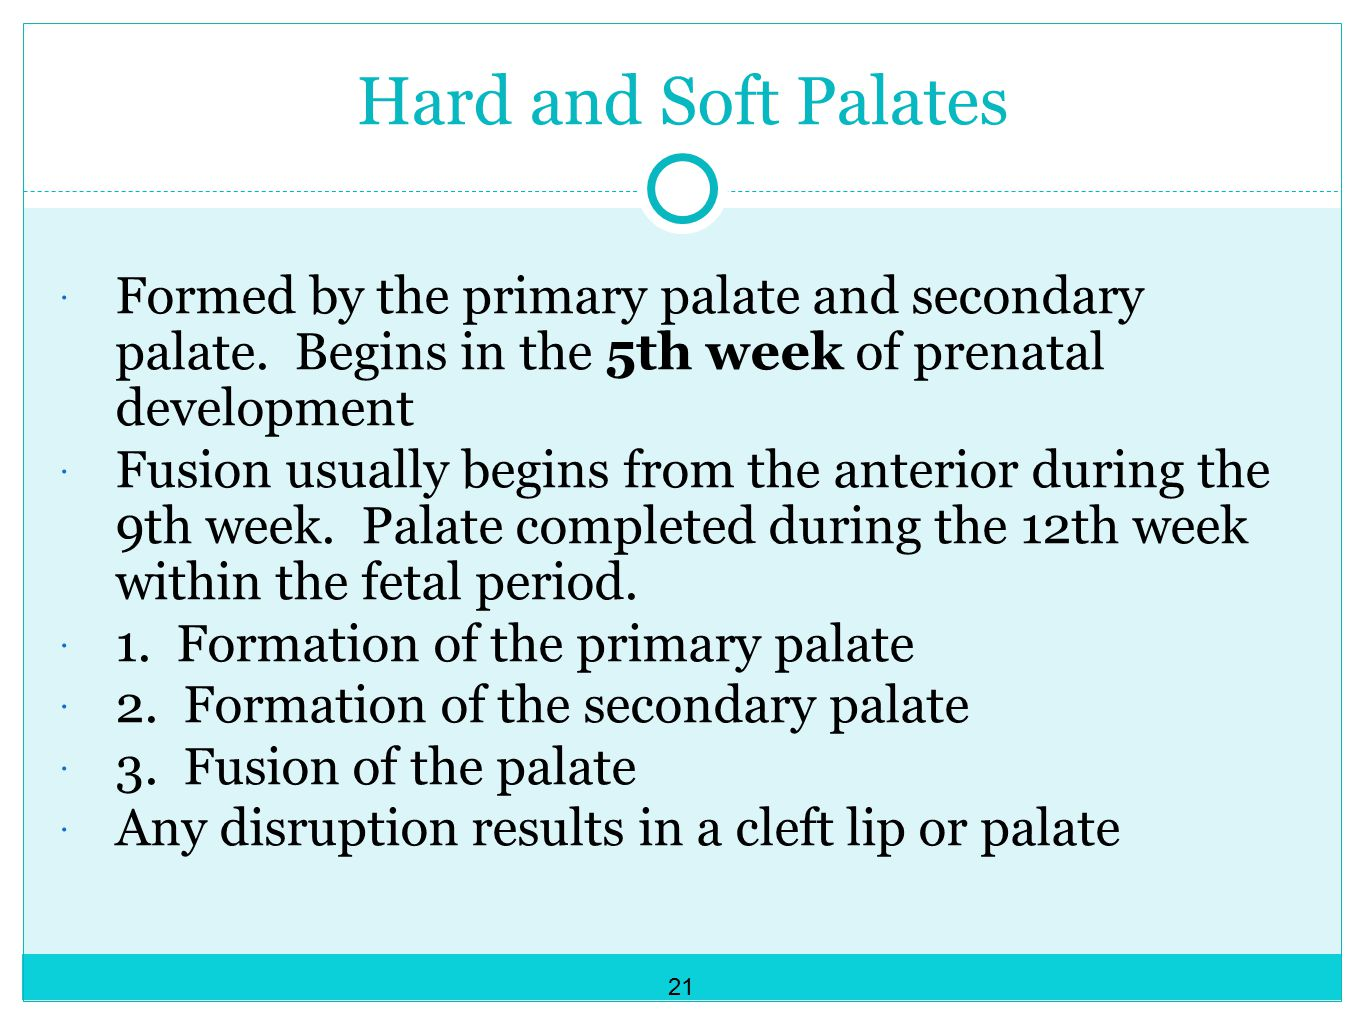 Hard and Soft Palates Formed by the primary palate and secondary palate. Begins in the 5th week of prenatal development.